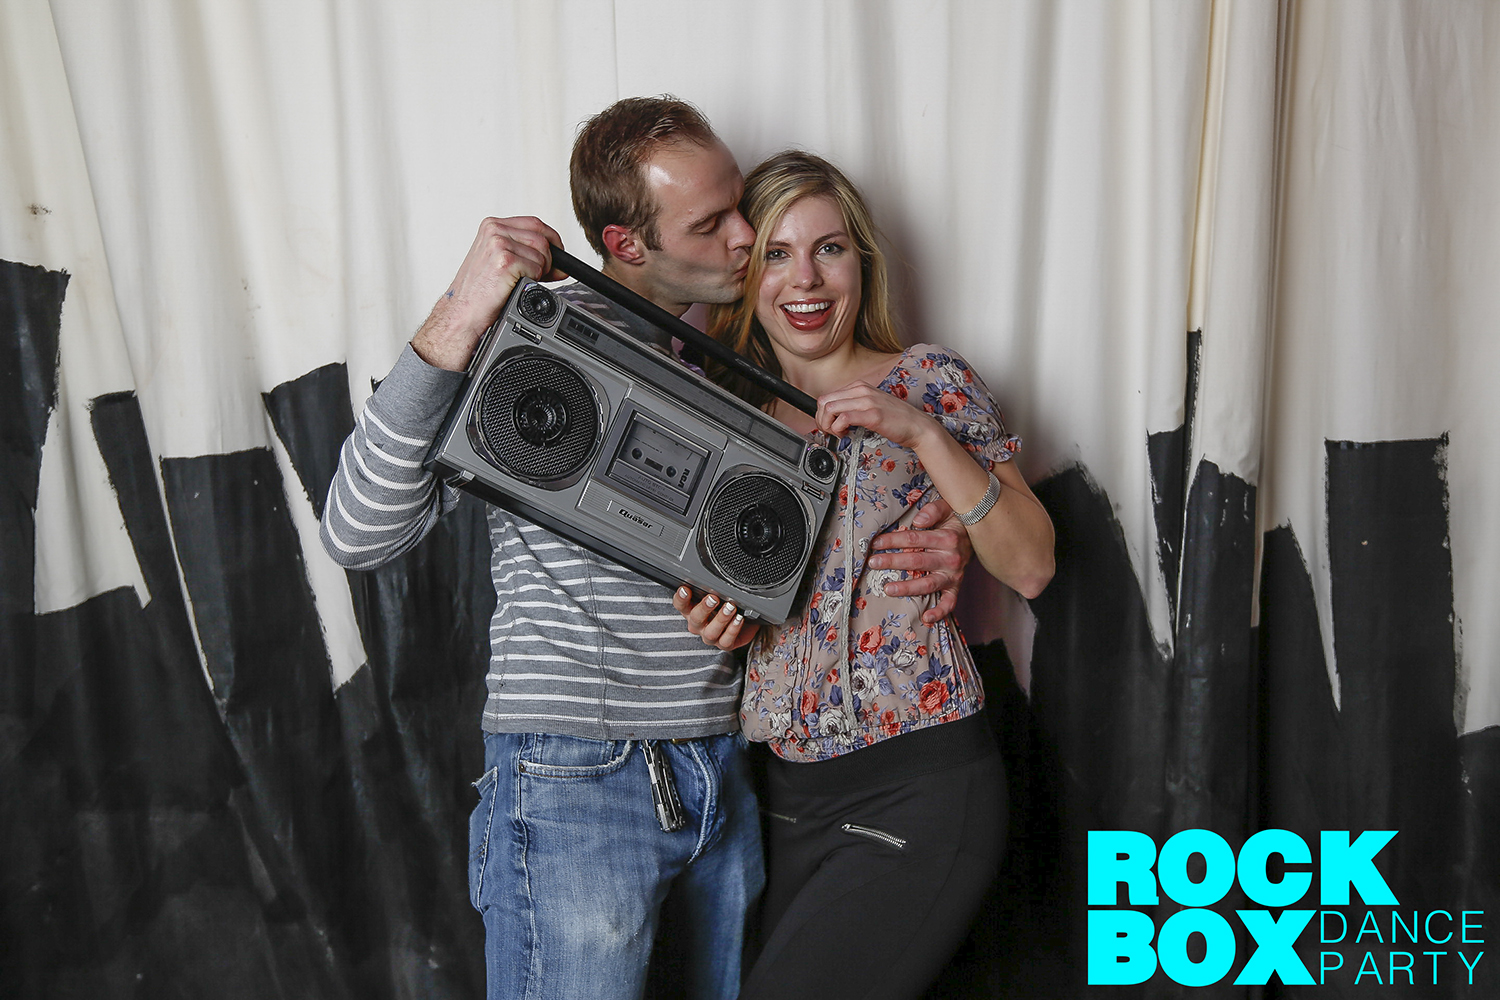 Rock box feb 2015-0165.jpg